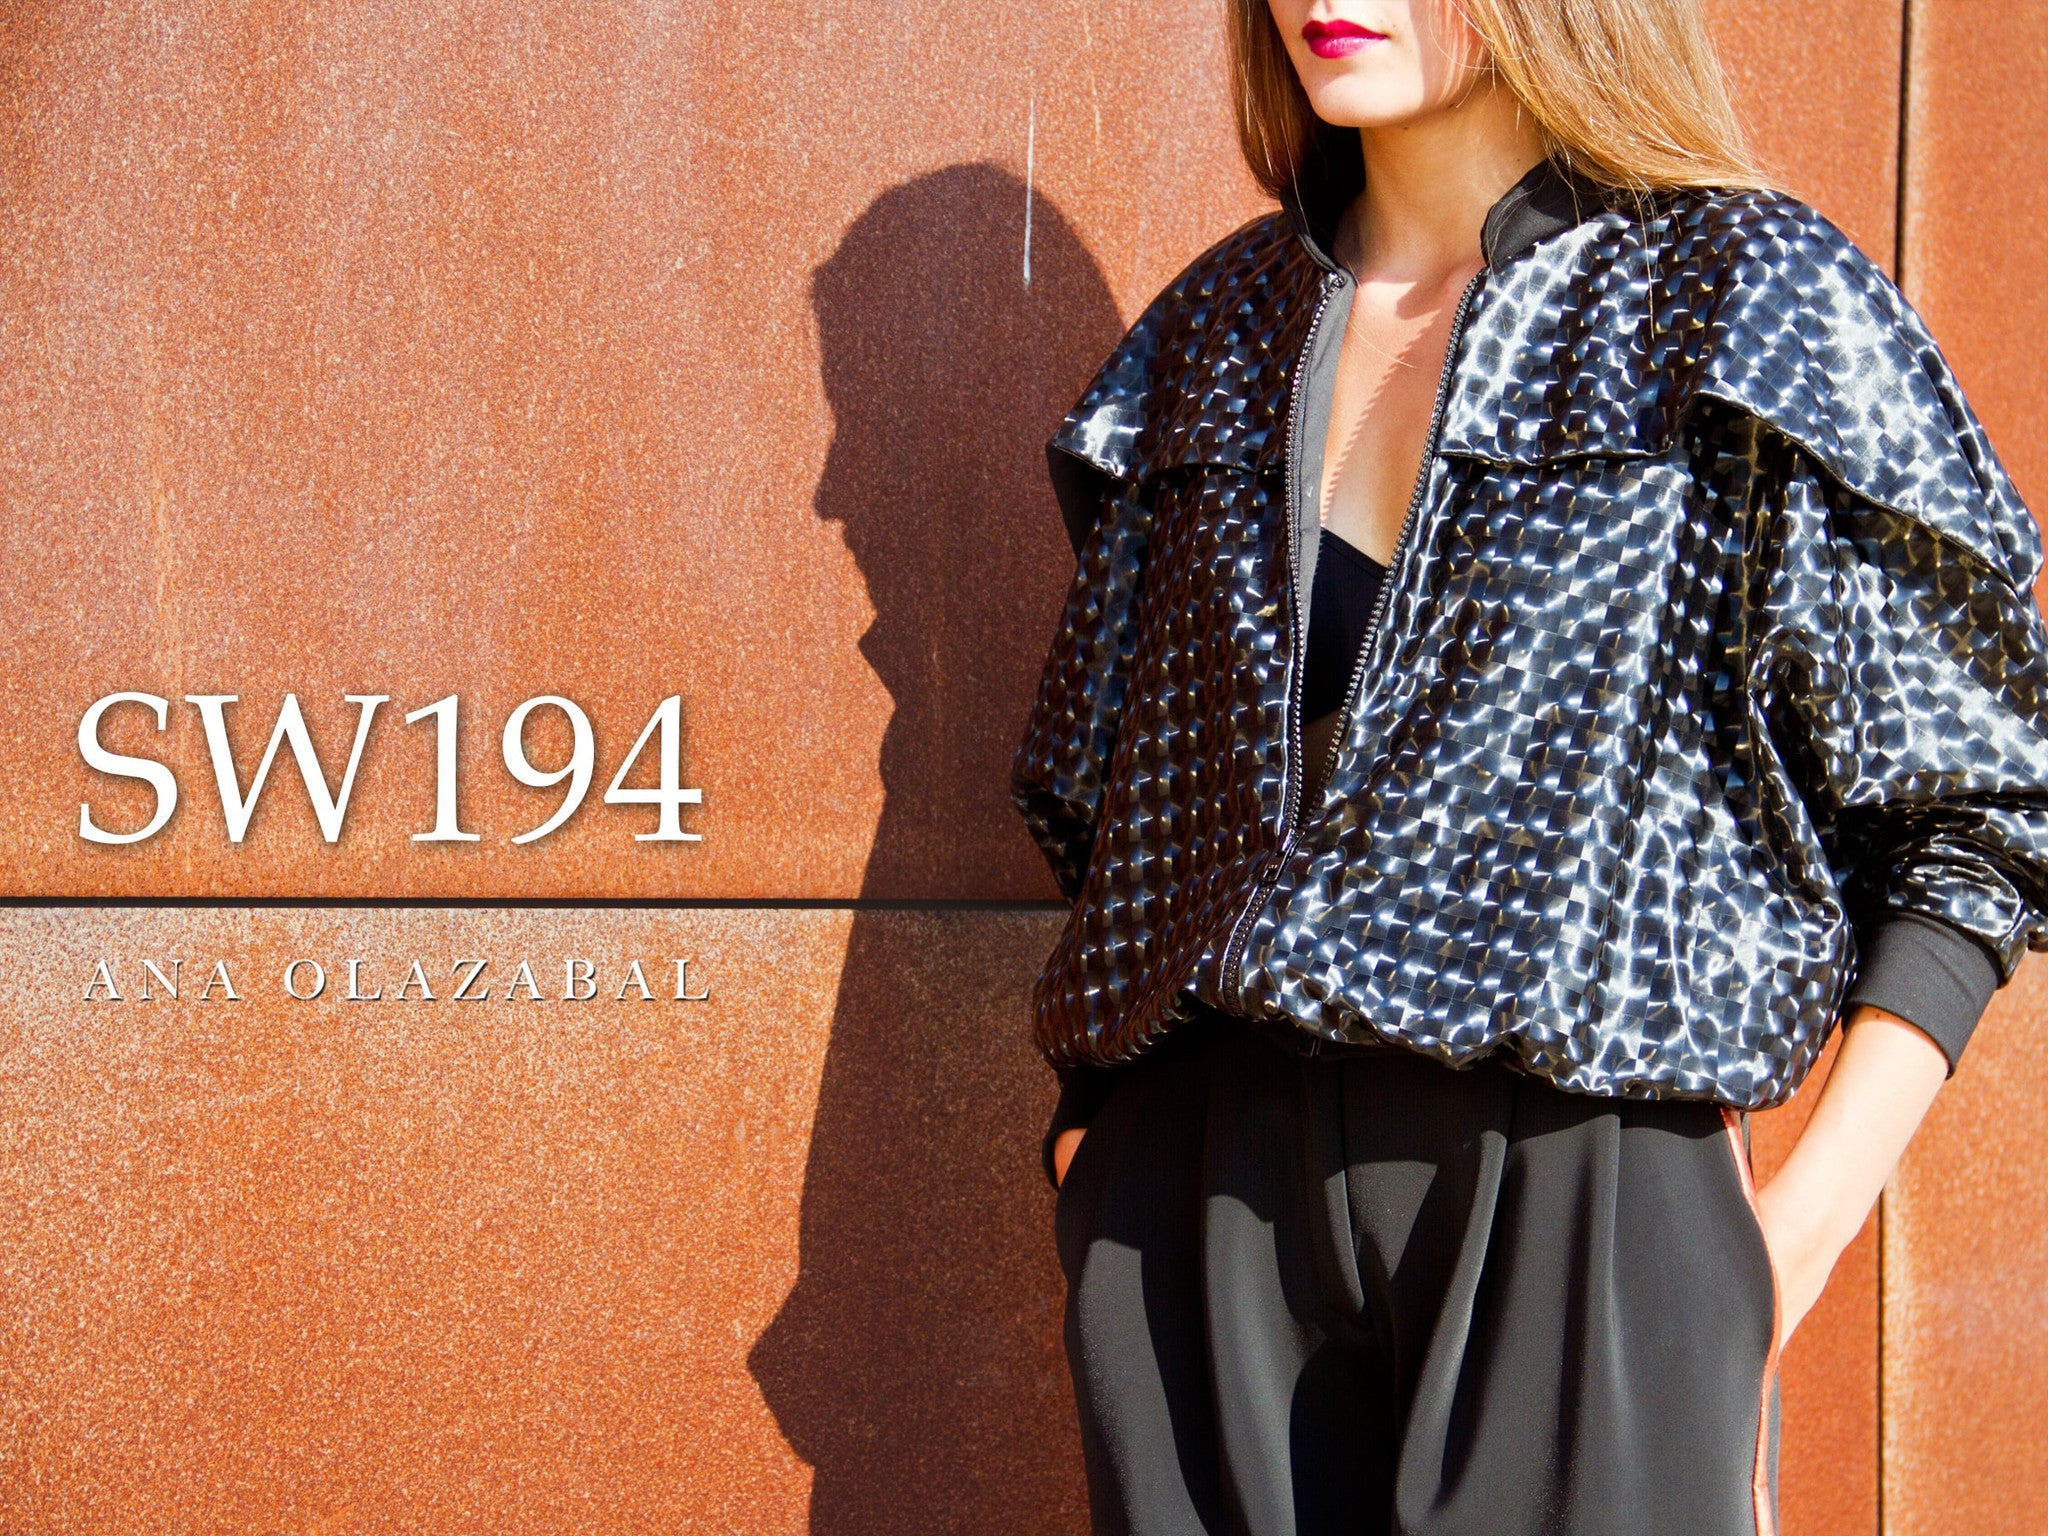 SW194 Lookbook